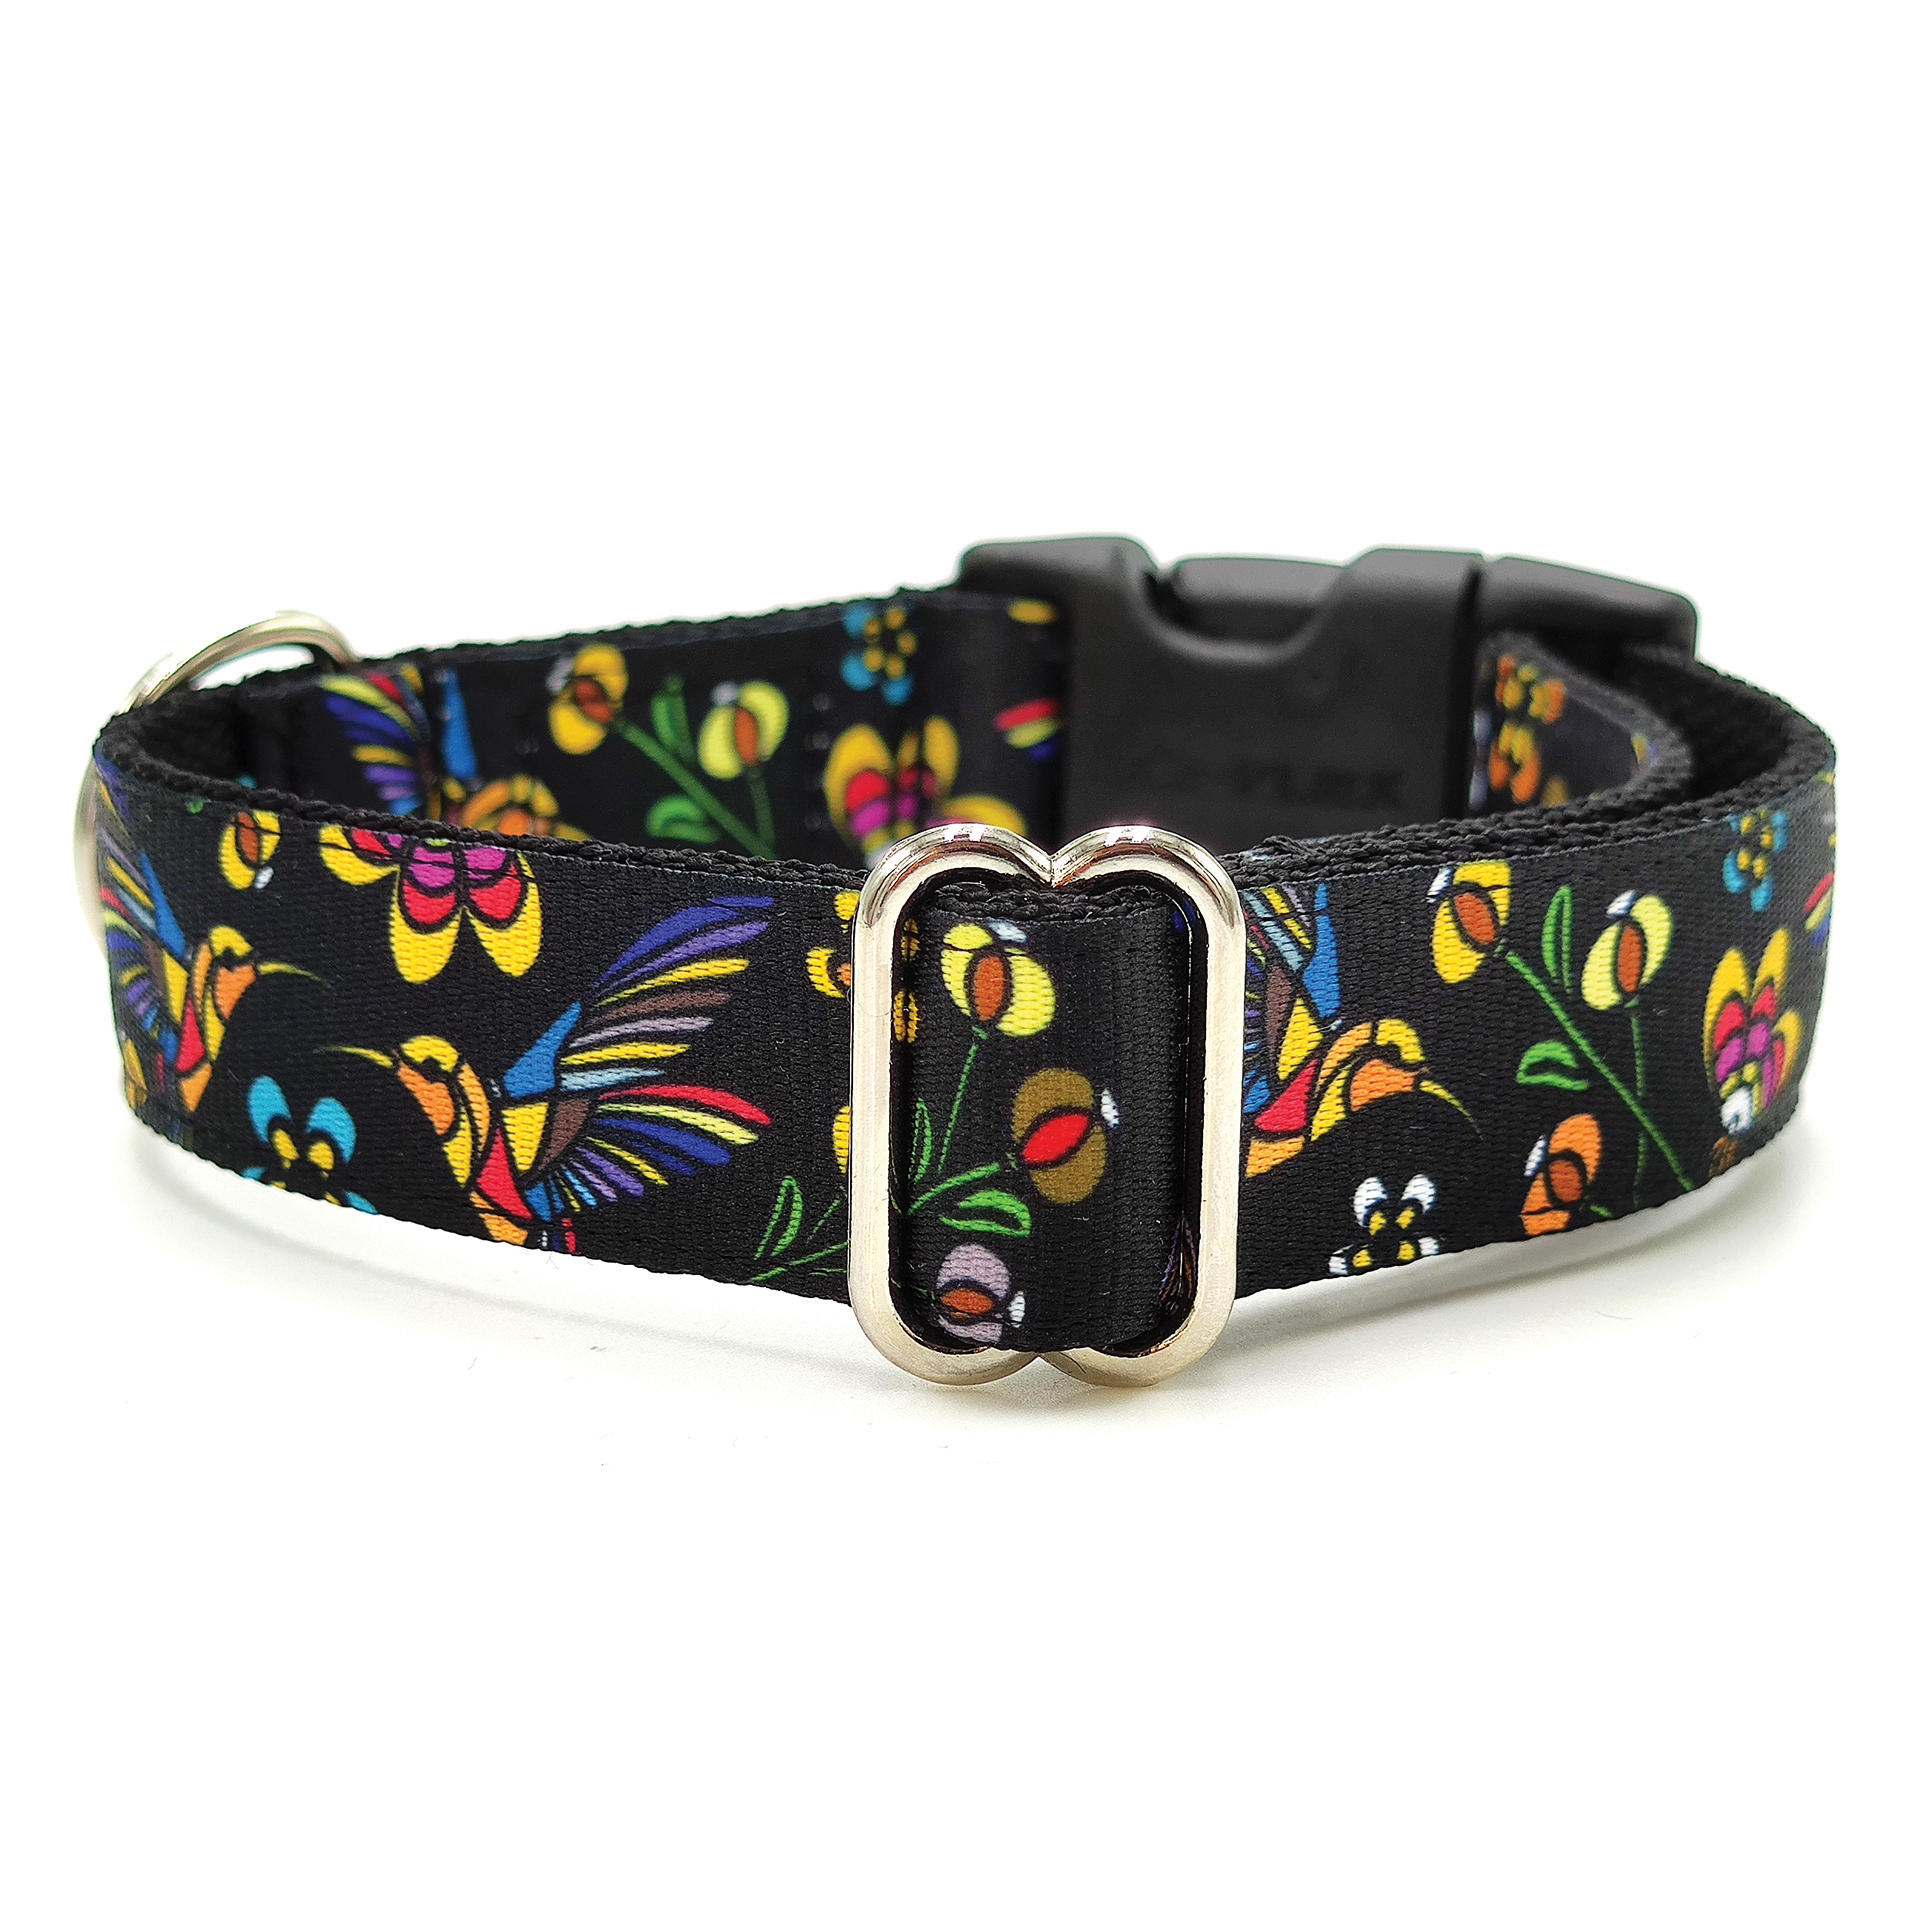 Hummingbird dog collar